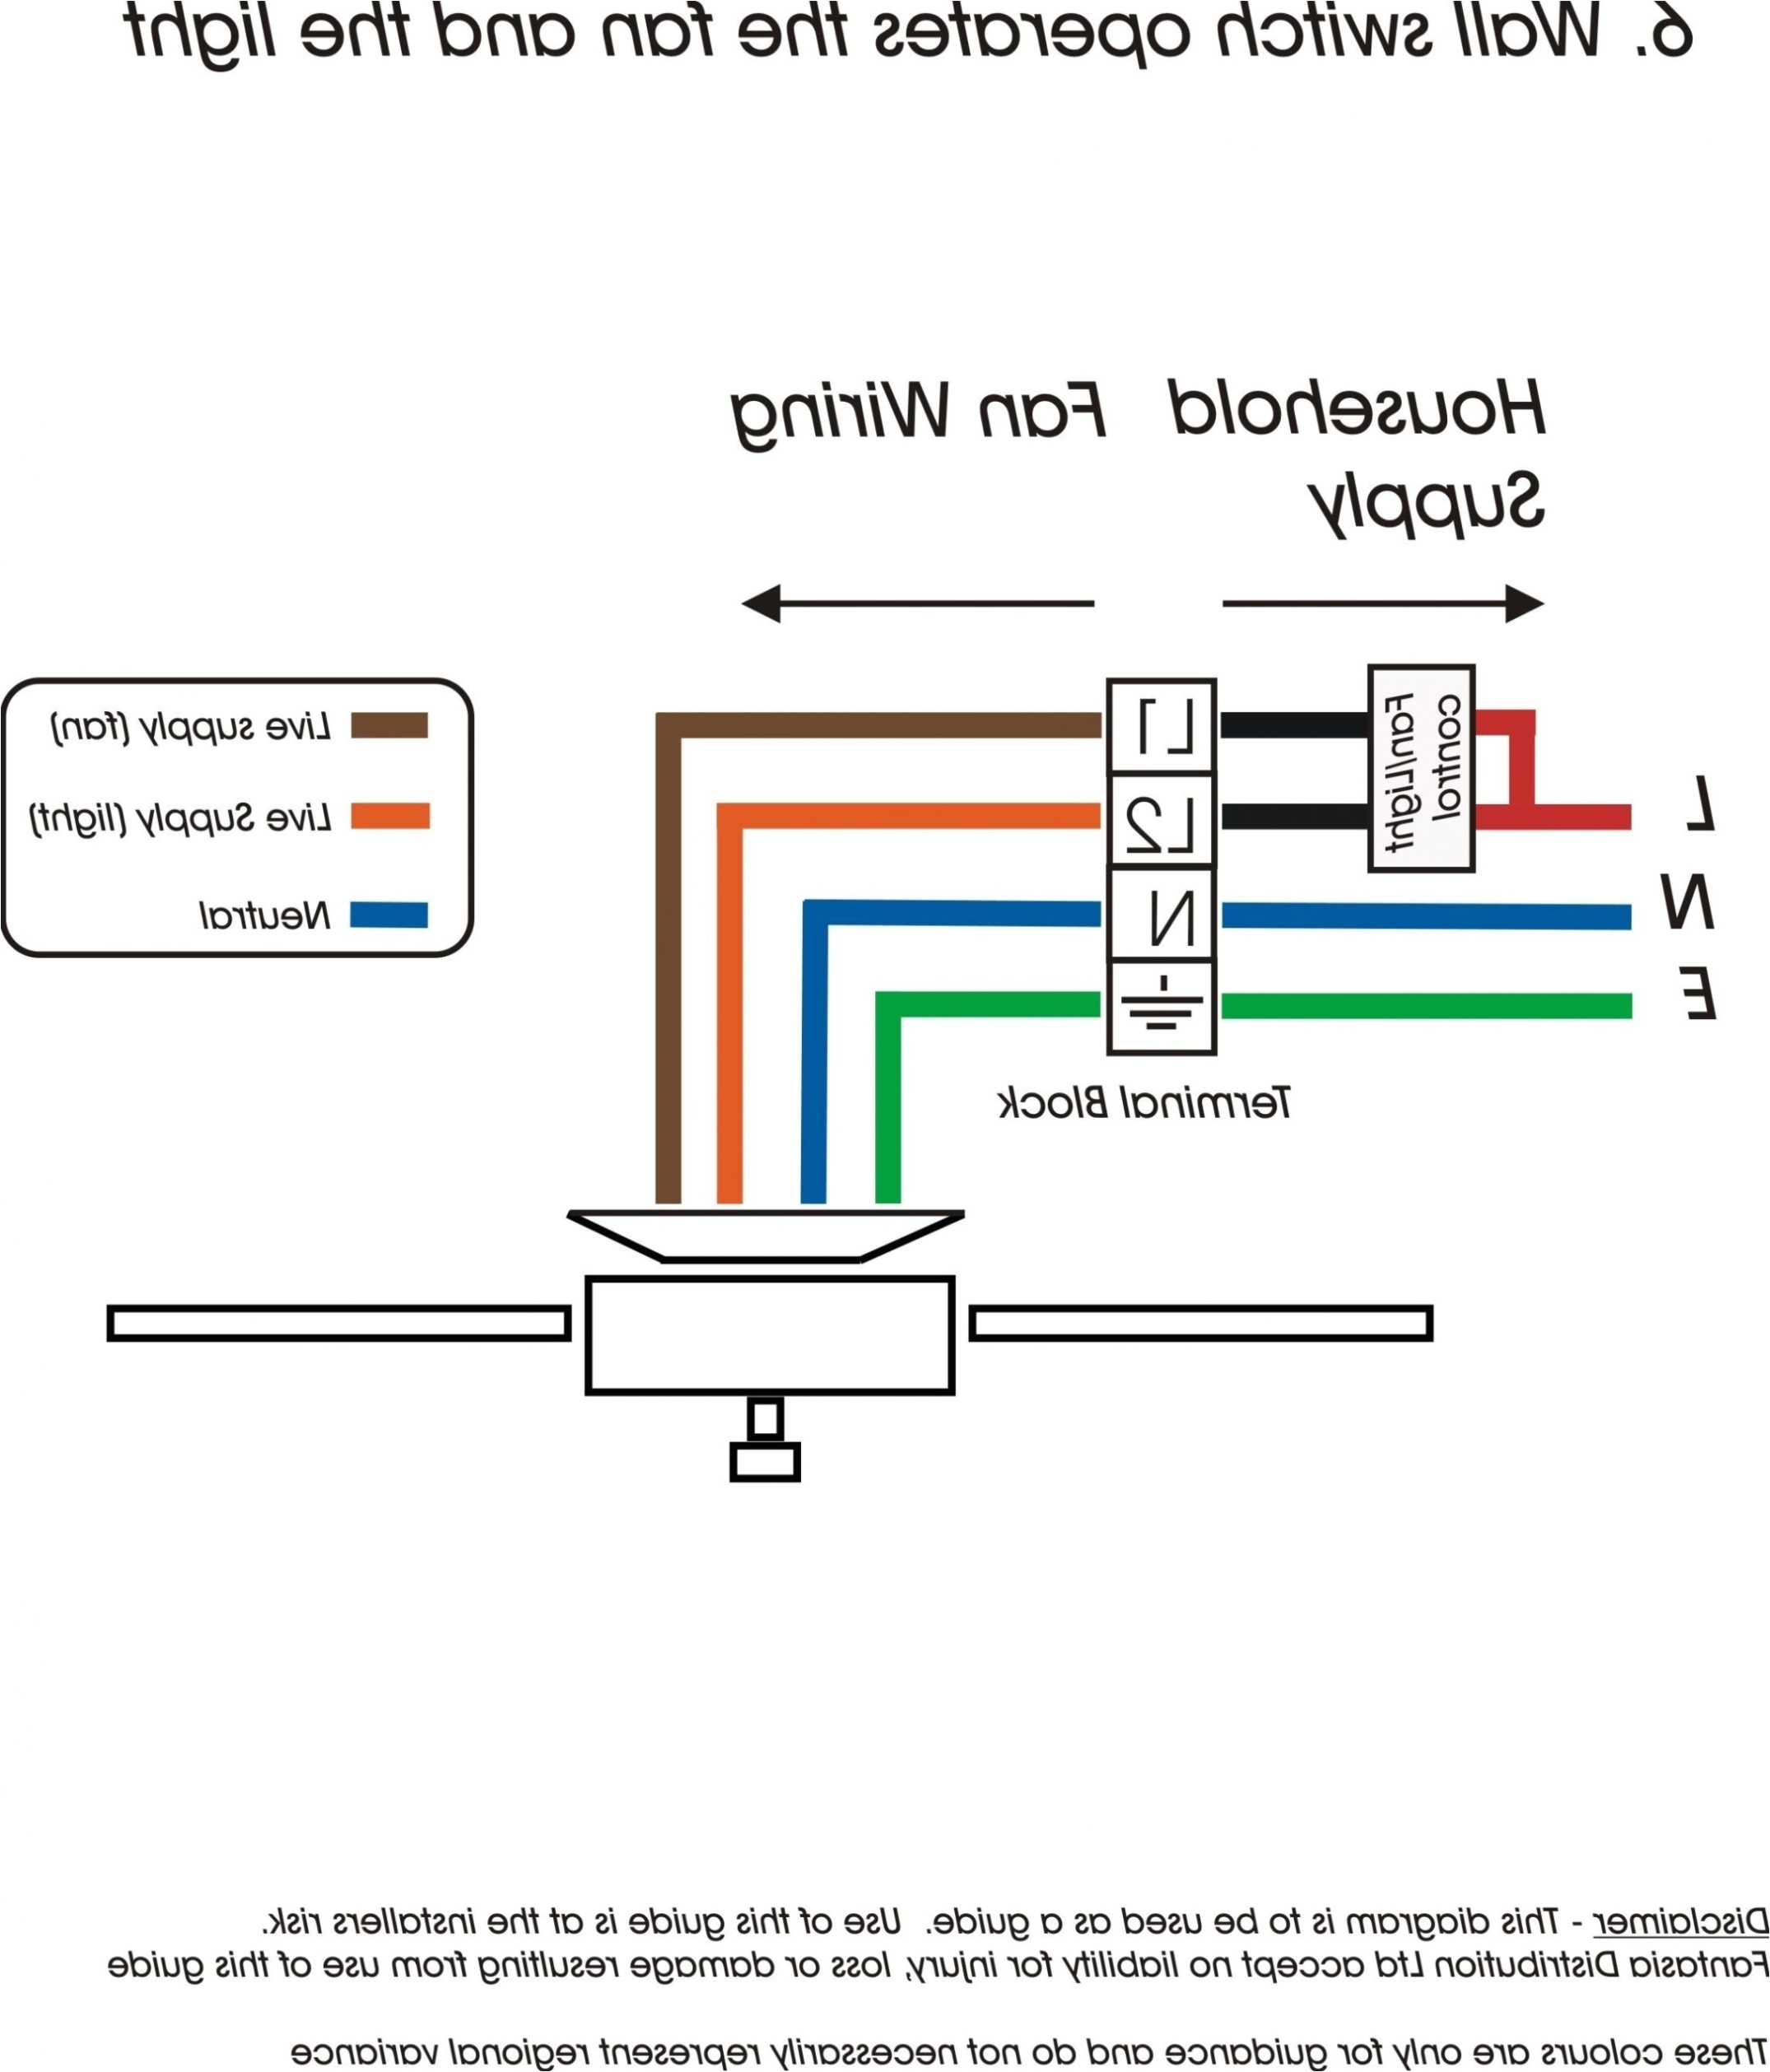 wiring diagram for headlight switch fresh how to wire a light switch diagram wiring diagram